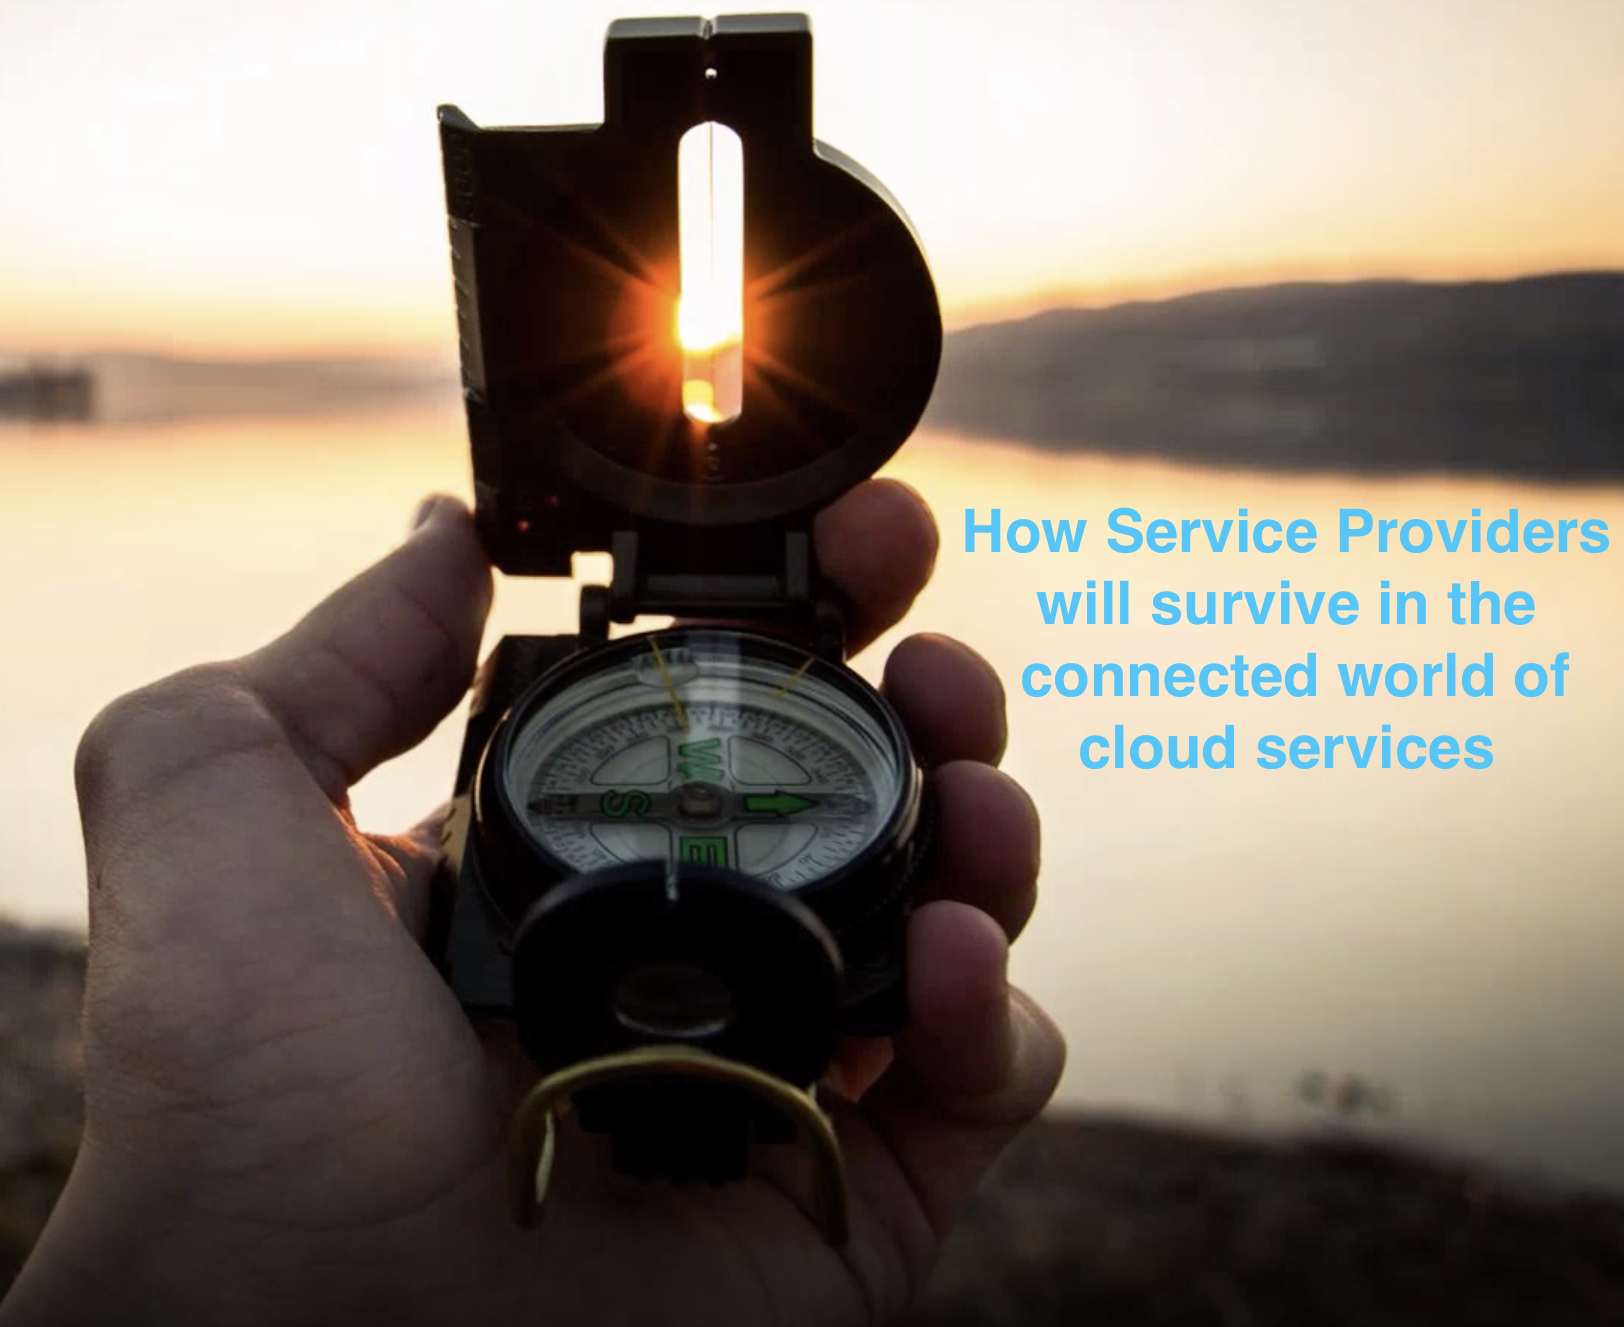 How Service providers will survive